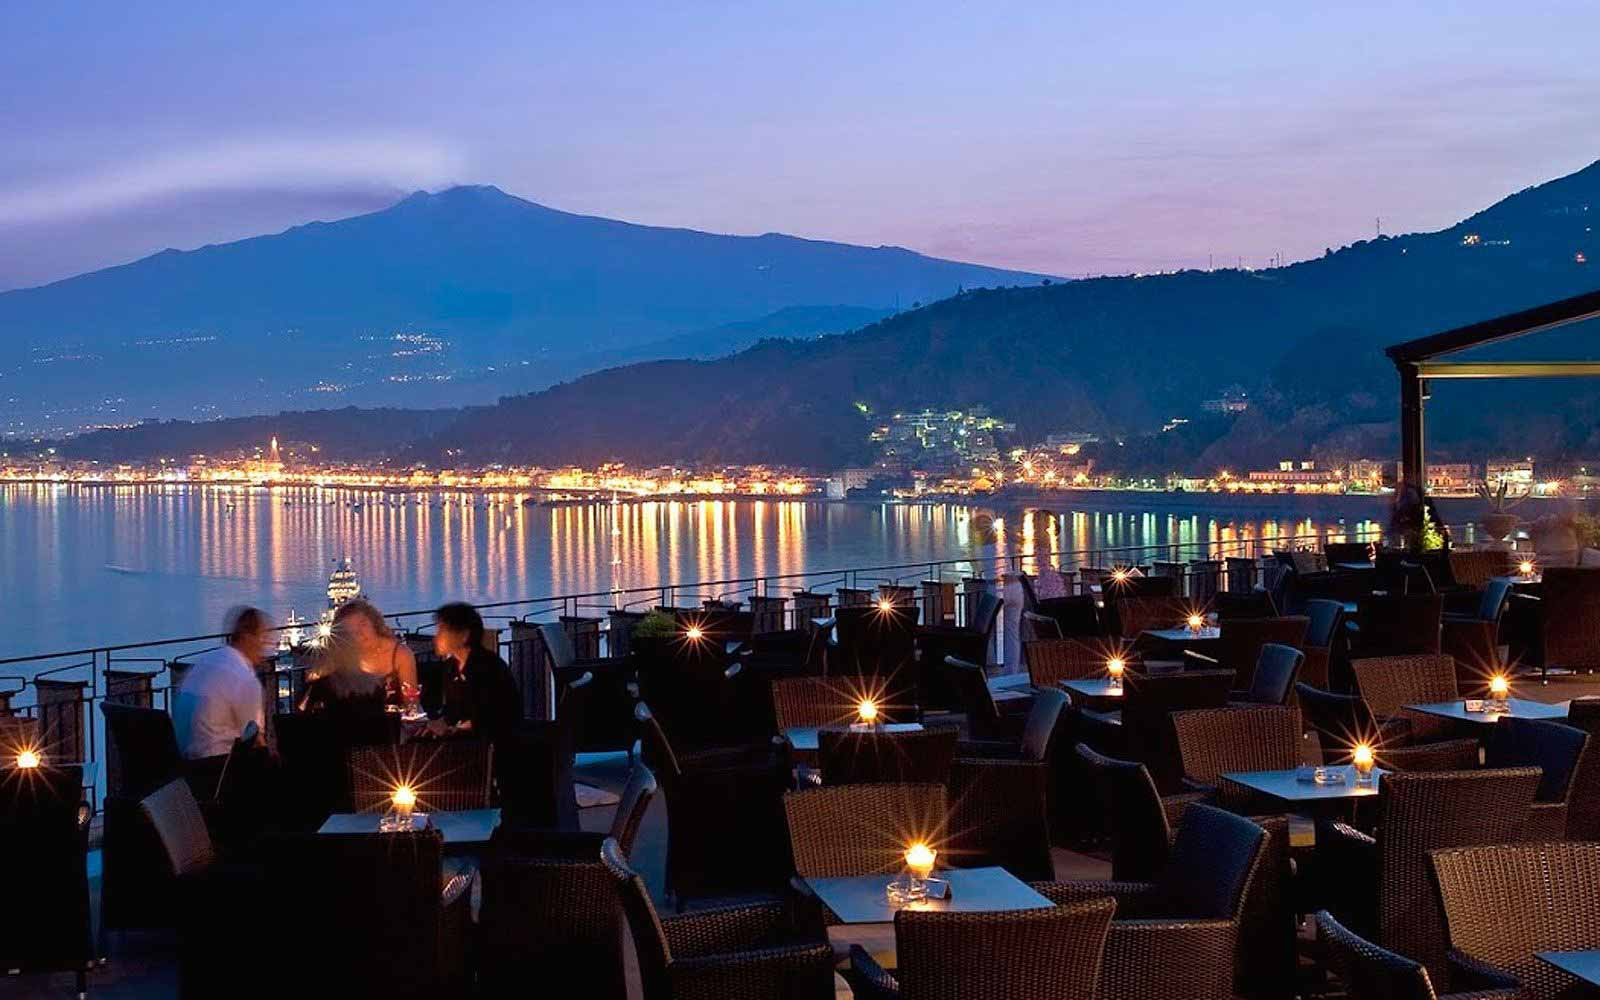 Terrace of the Atahotel Capotaormina with Mount Etna & Naxos in the distance